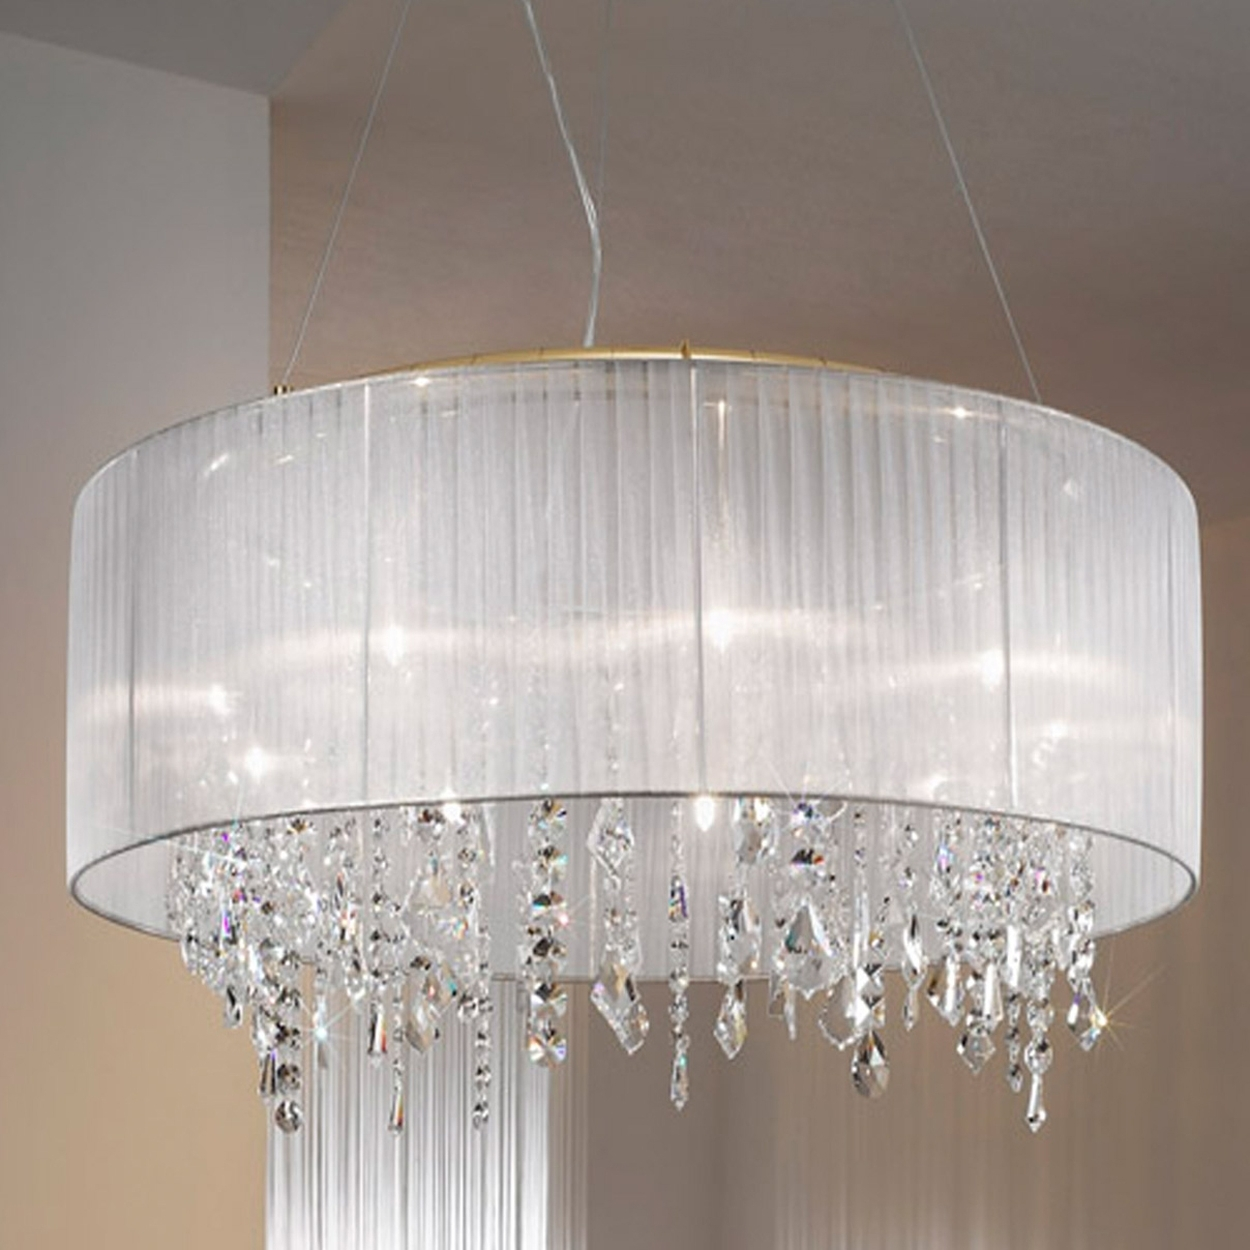 Chandelier Light Shades Intended For Best And Newest Chandelier Lamp Shades With Crystals : Furniture Decor Trend – Best (View 5 of 15)